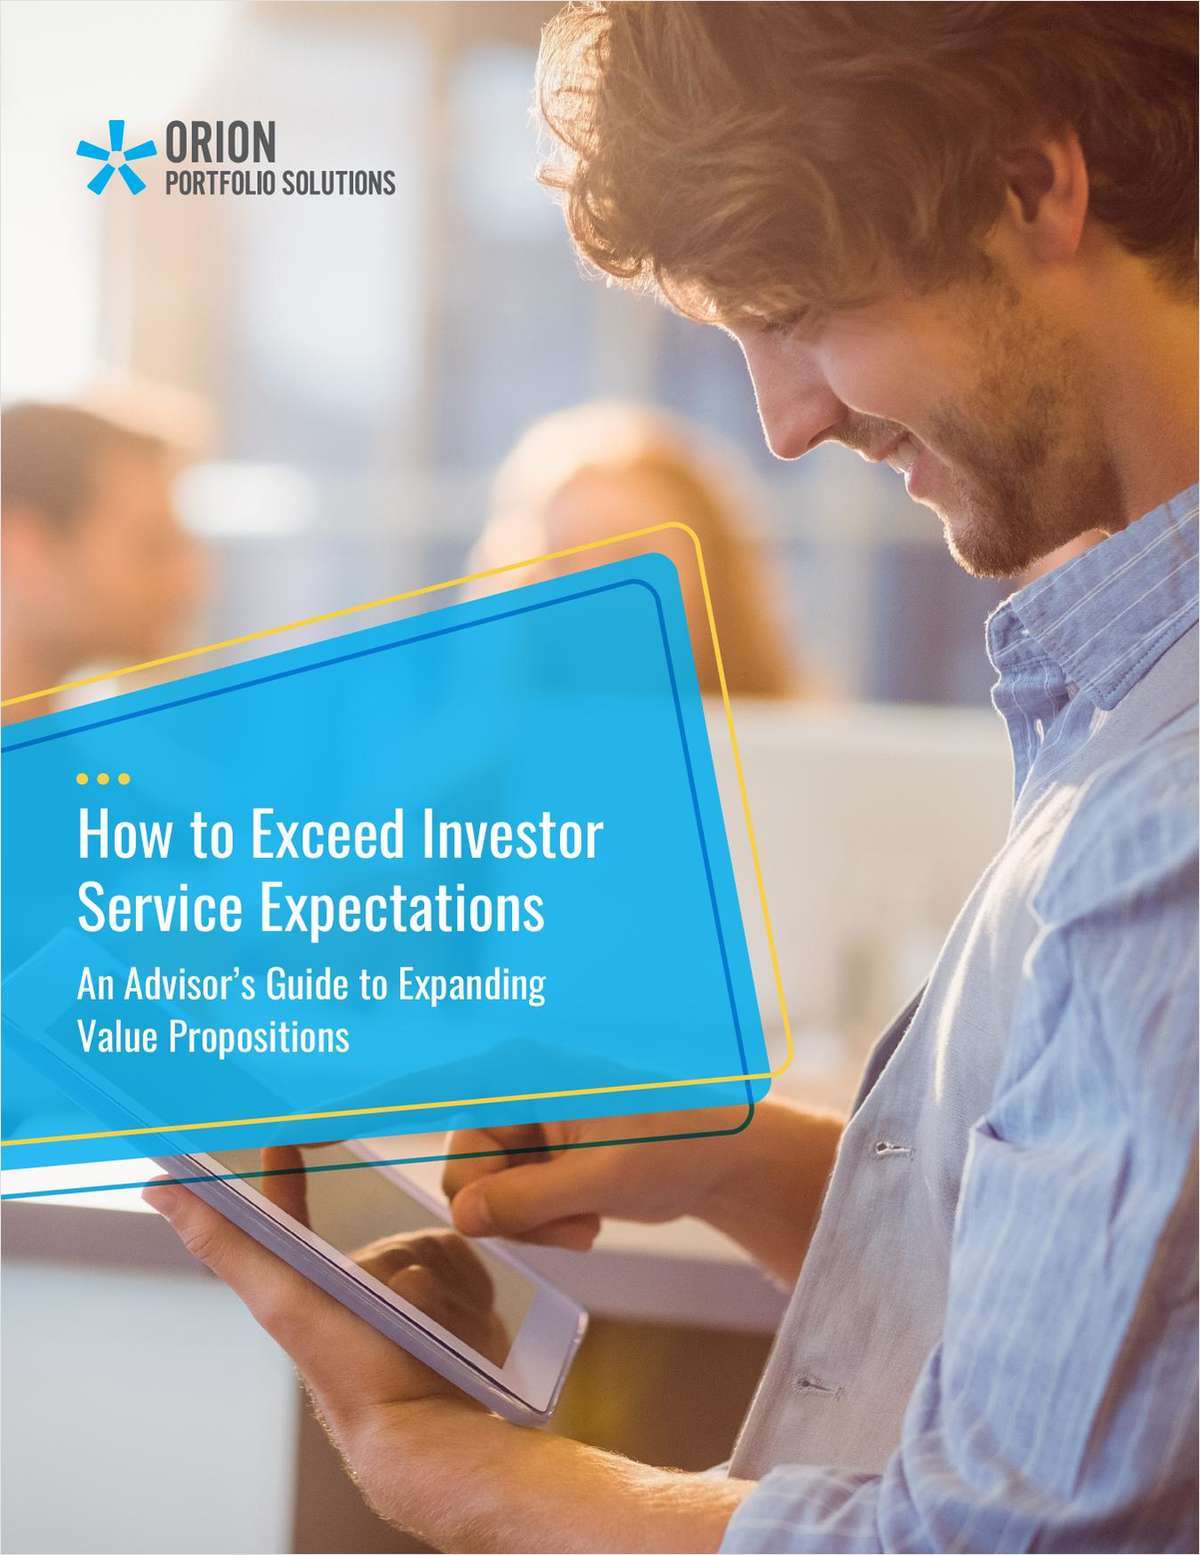 How to Exceed Investor Service Expectations: An Advisor's Guide to Expanding Value Propositions